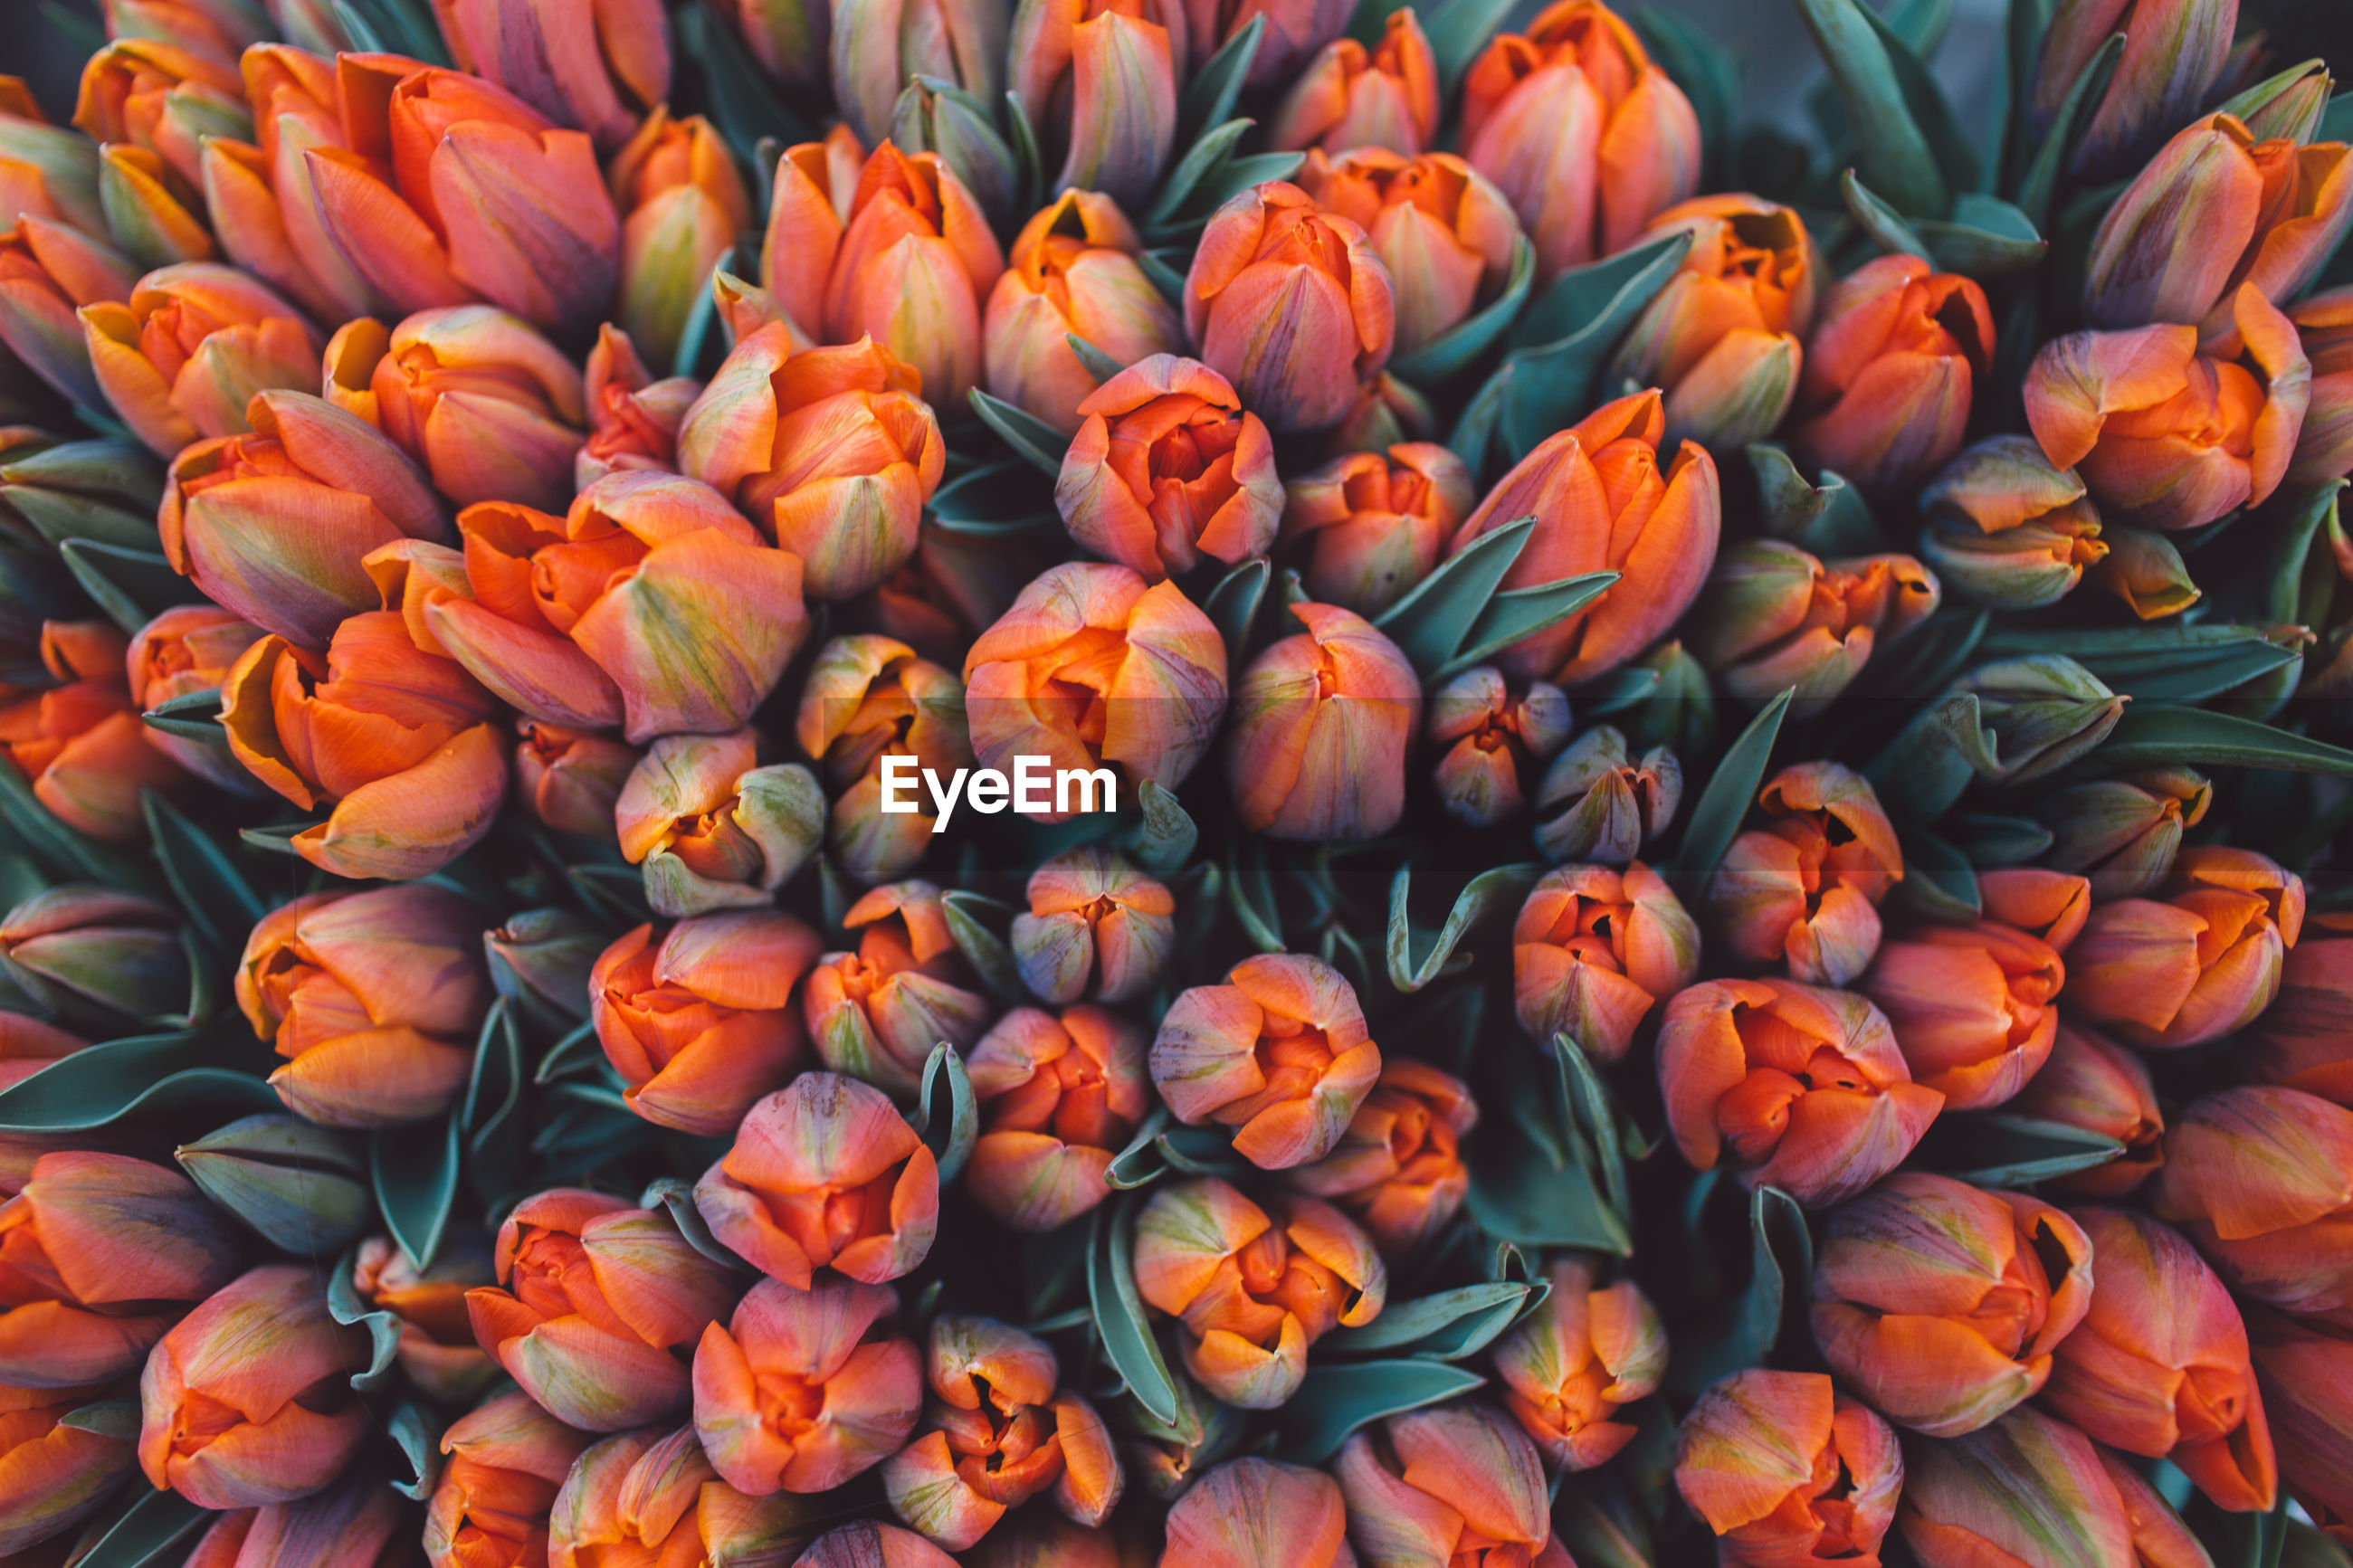 Full frame shot of tulips